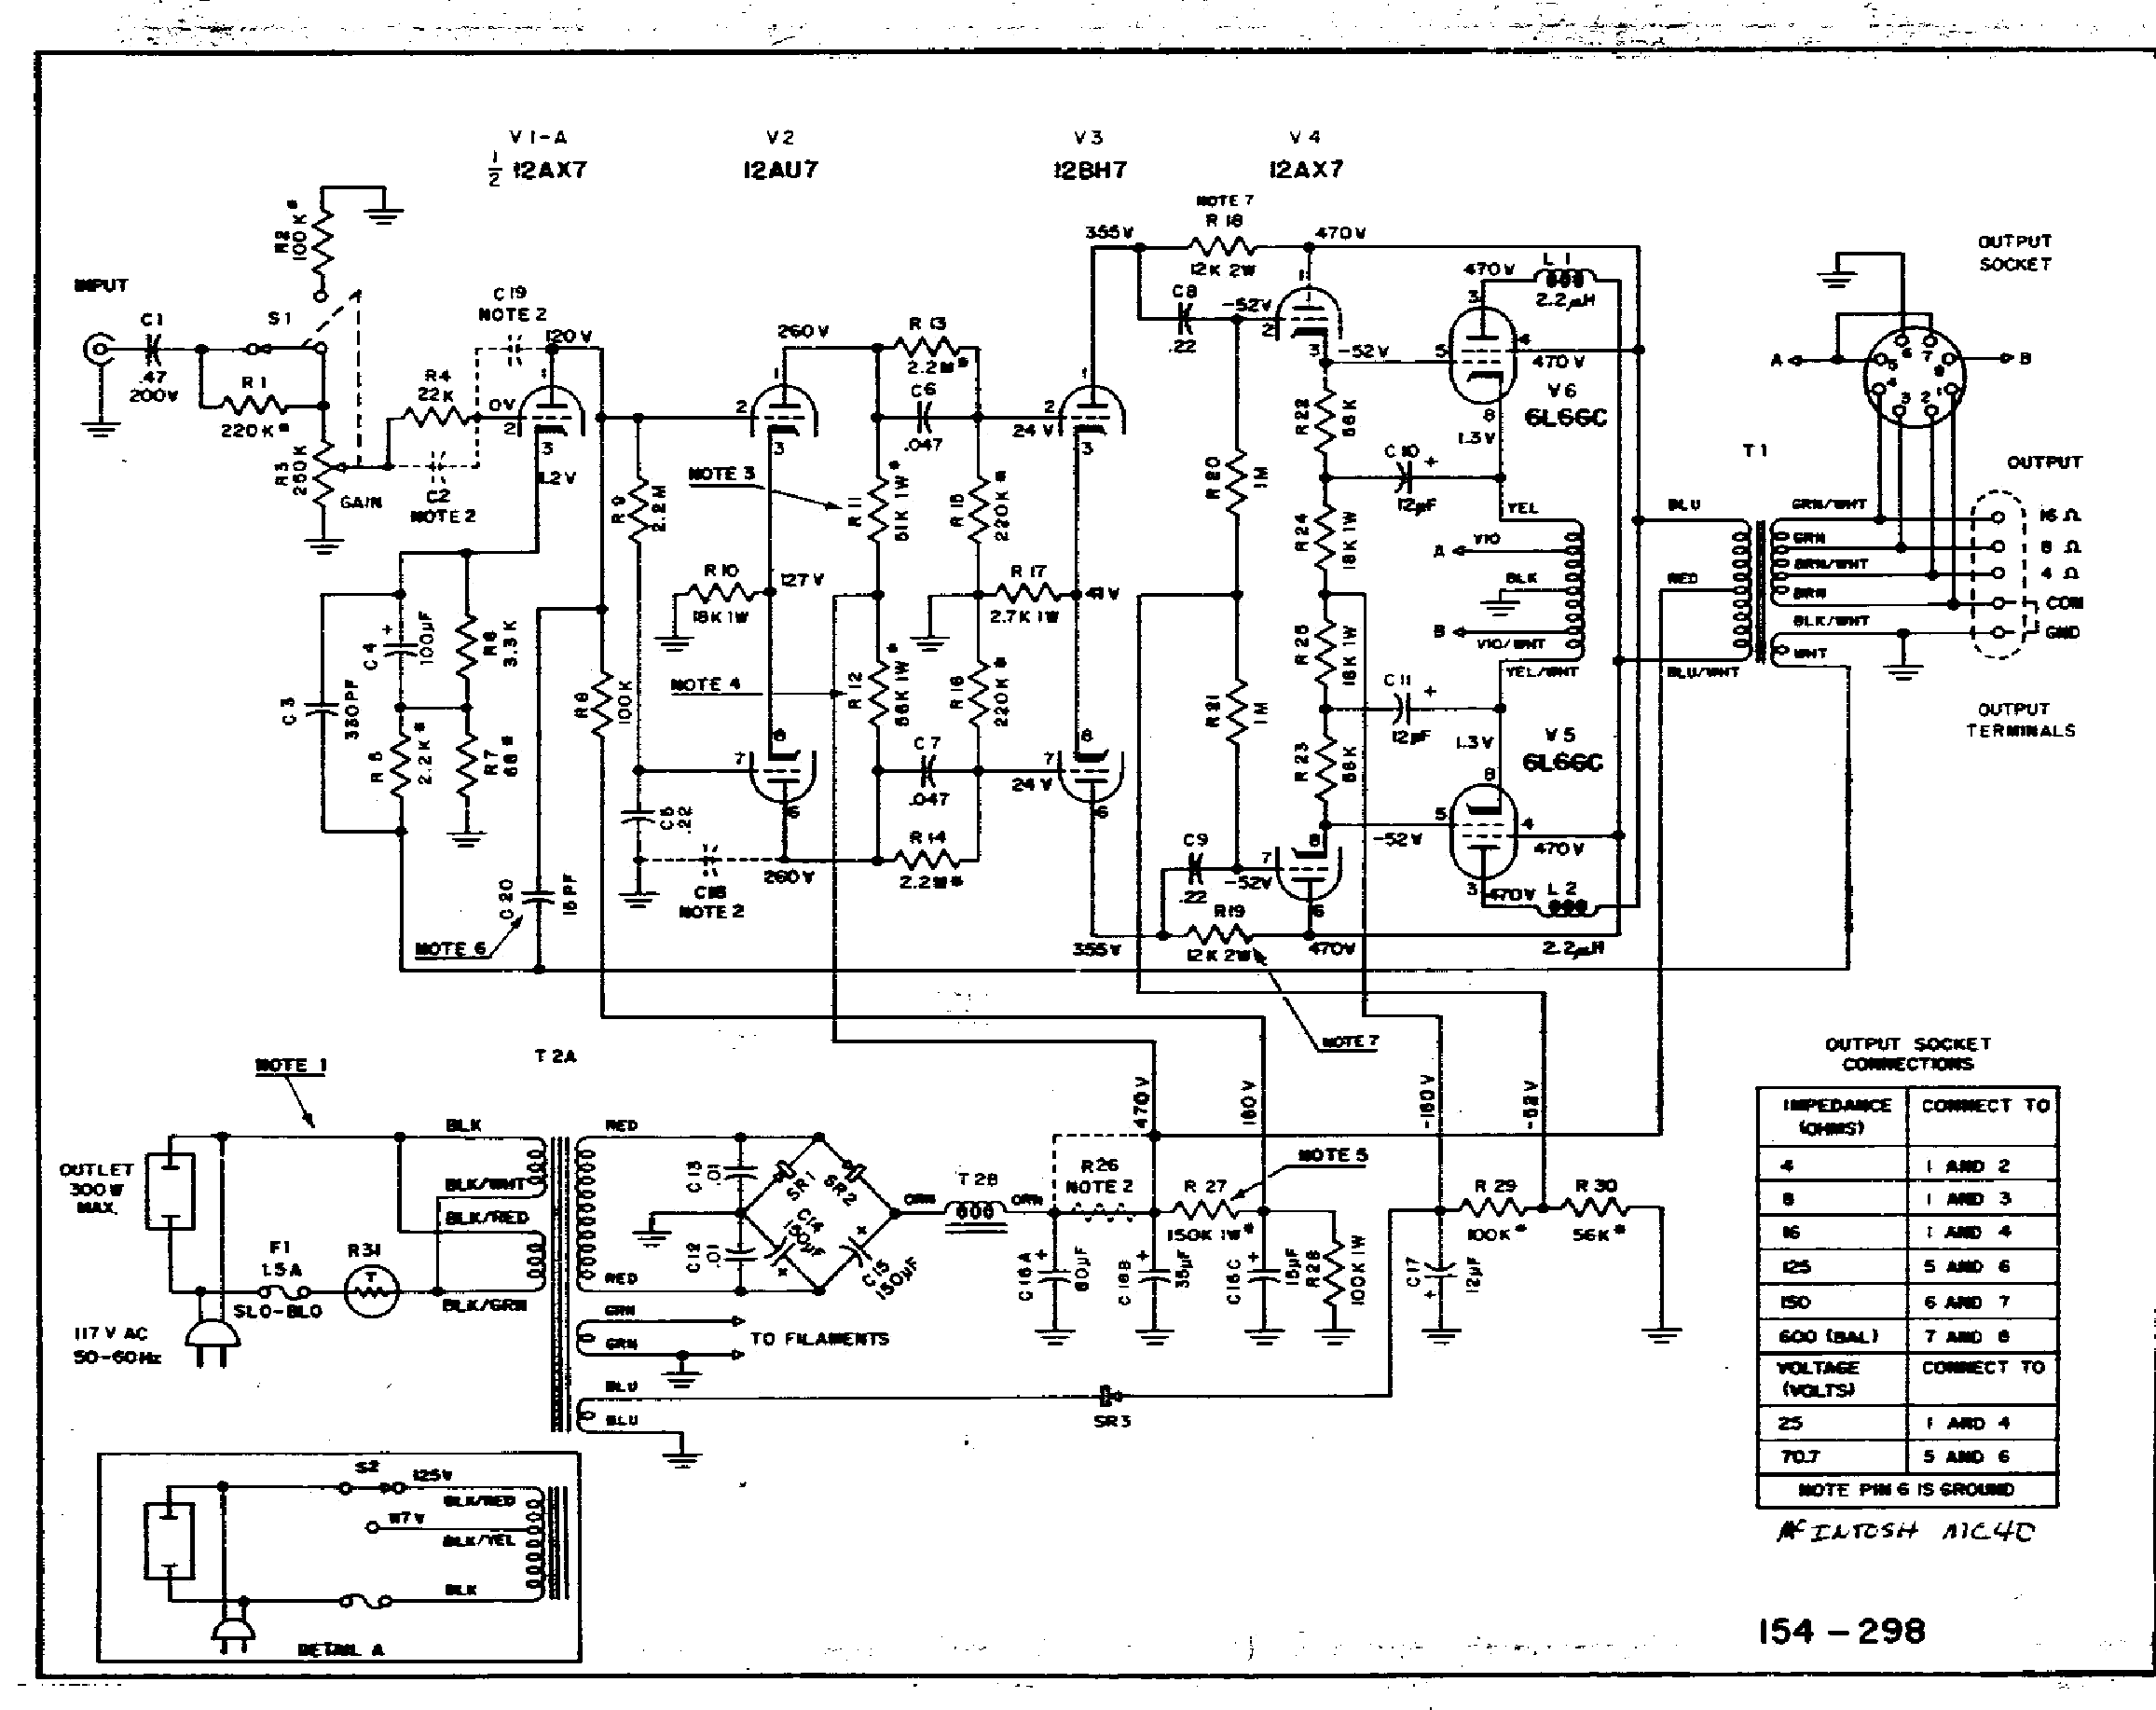 mc 2100 schematic gallery